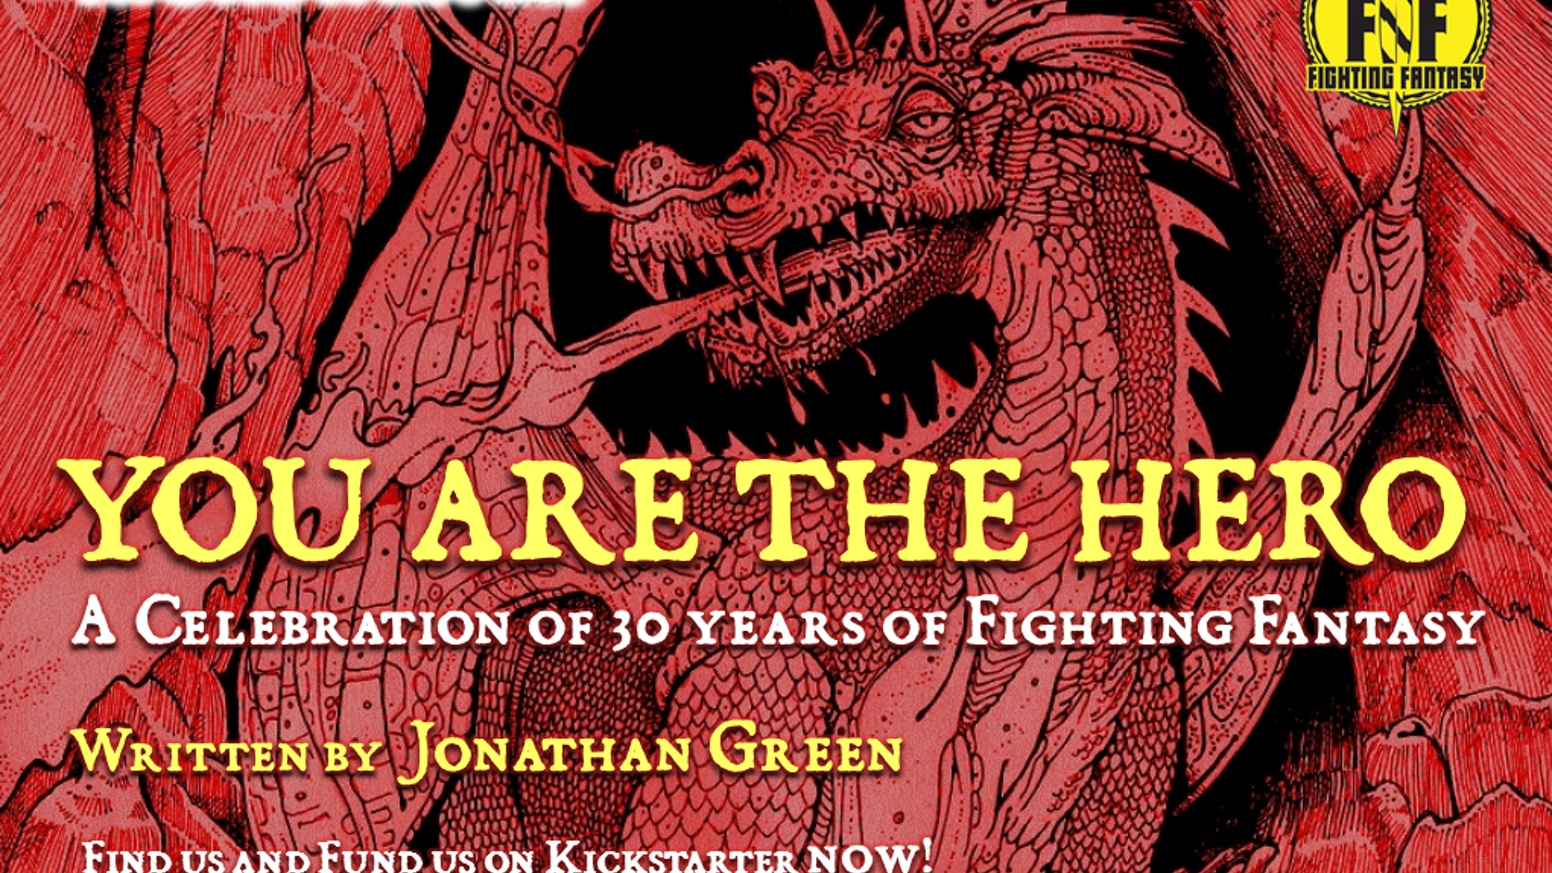 A 'coffee table' book celebrating 30 years of Fighting Fantasy, the publishing phenomenon created by Steve Jackson and Ian Livingstone.